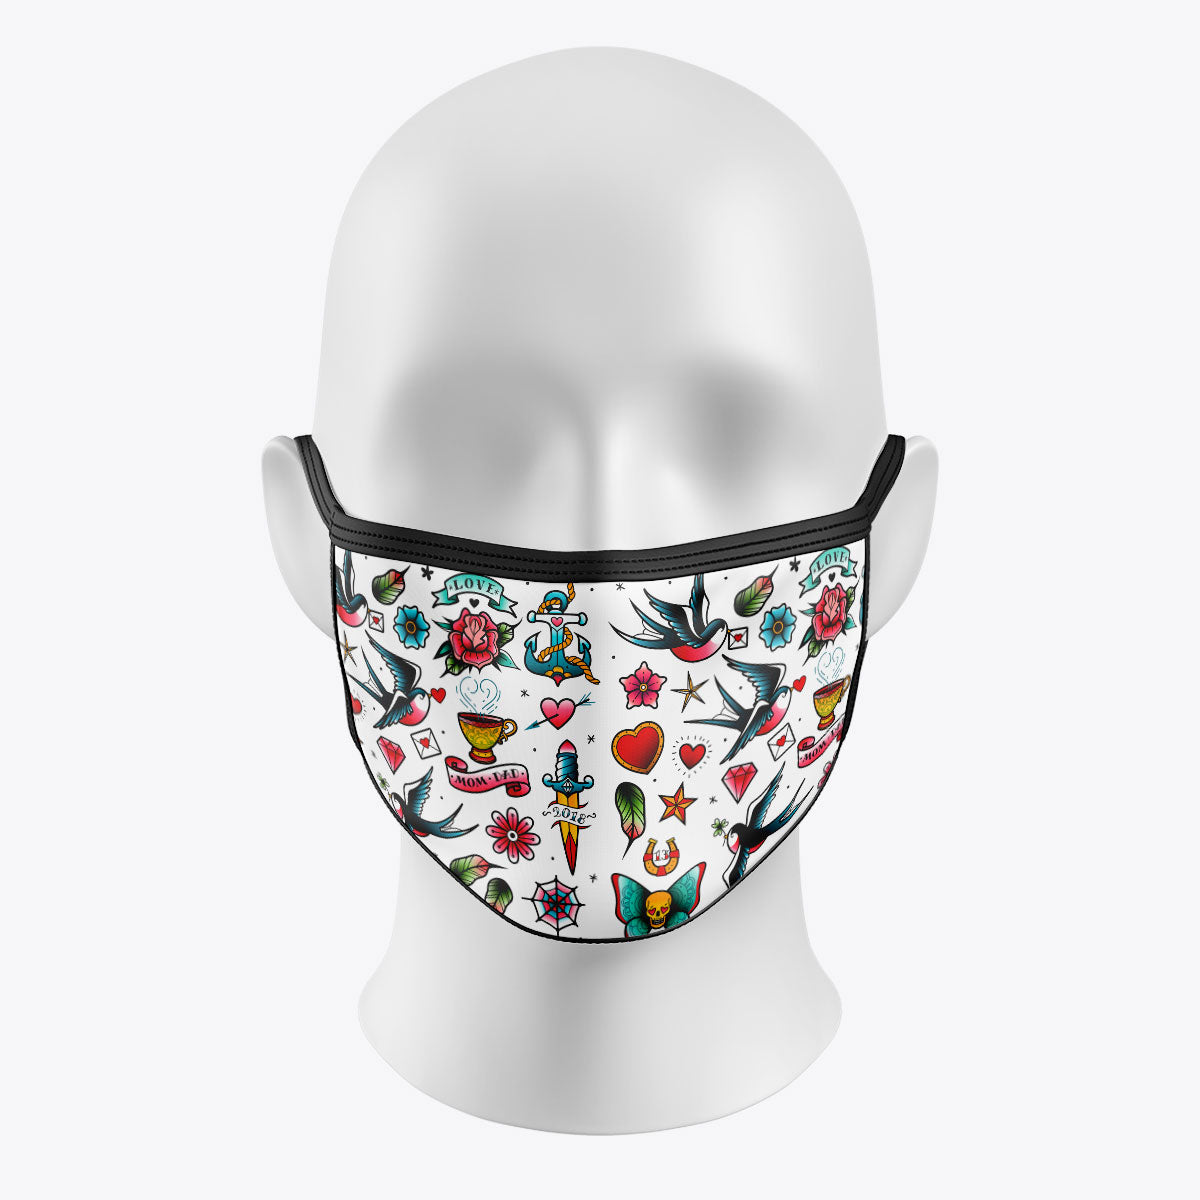 Tattoo - Cover Mask